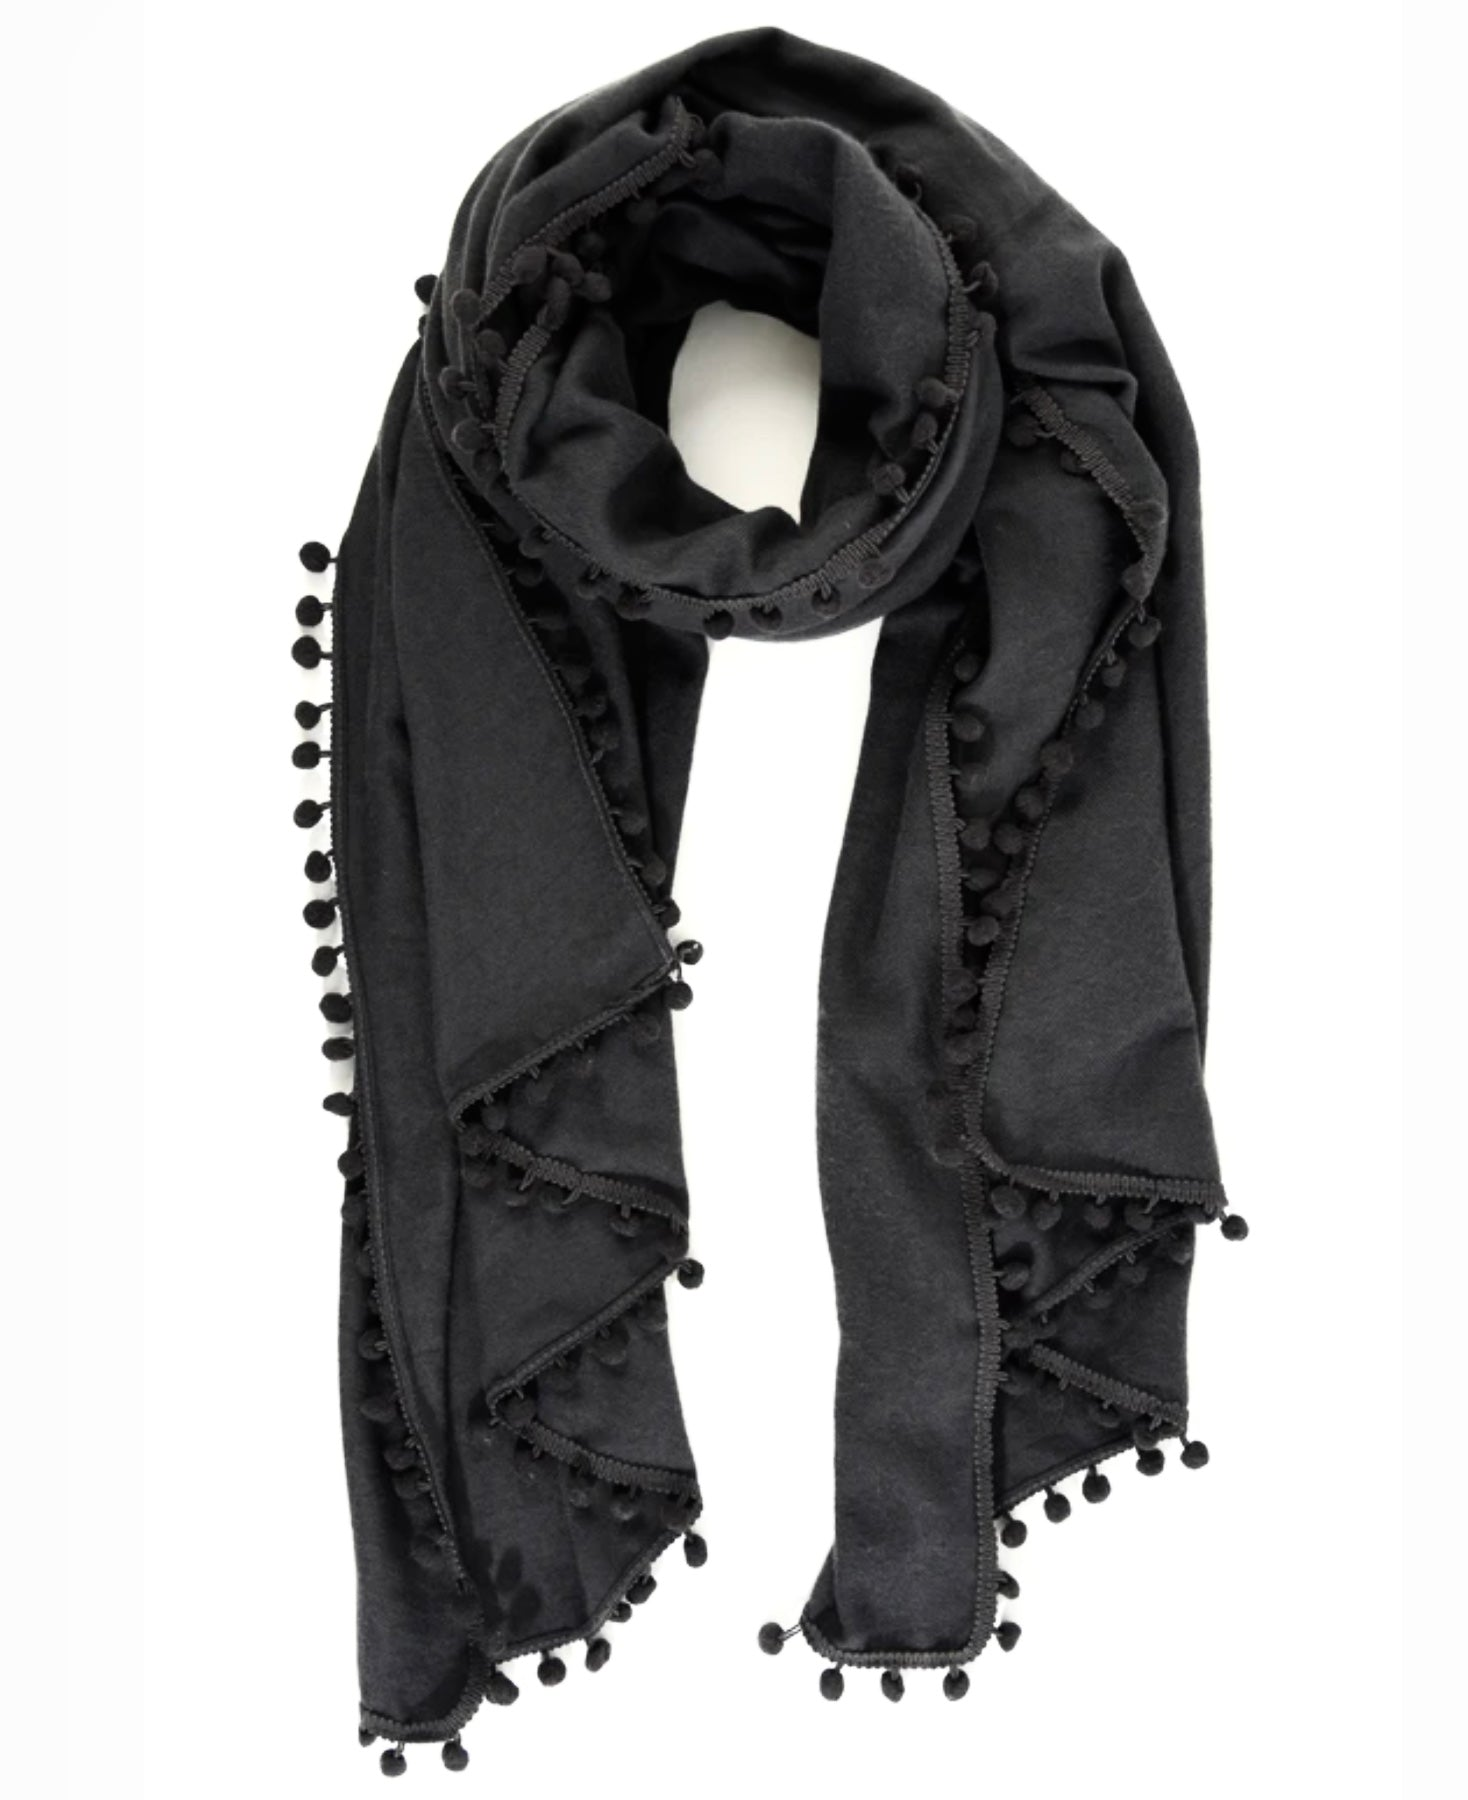 Charcoal bobble trim scarf